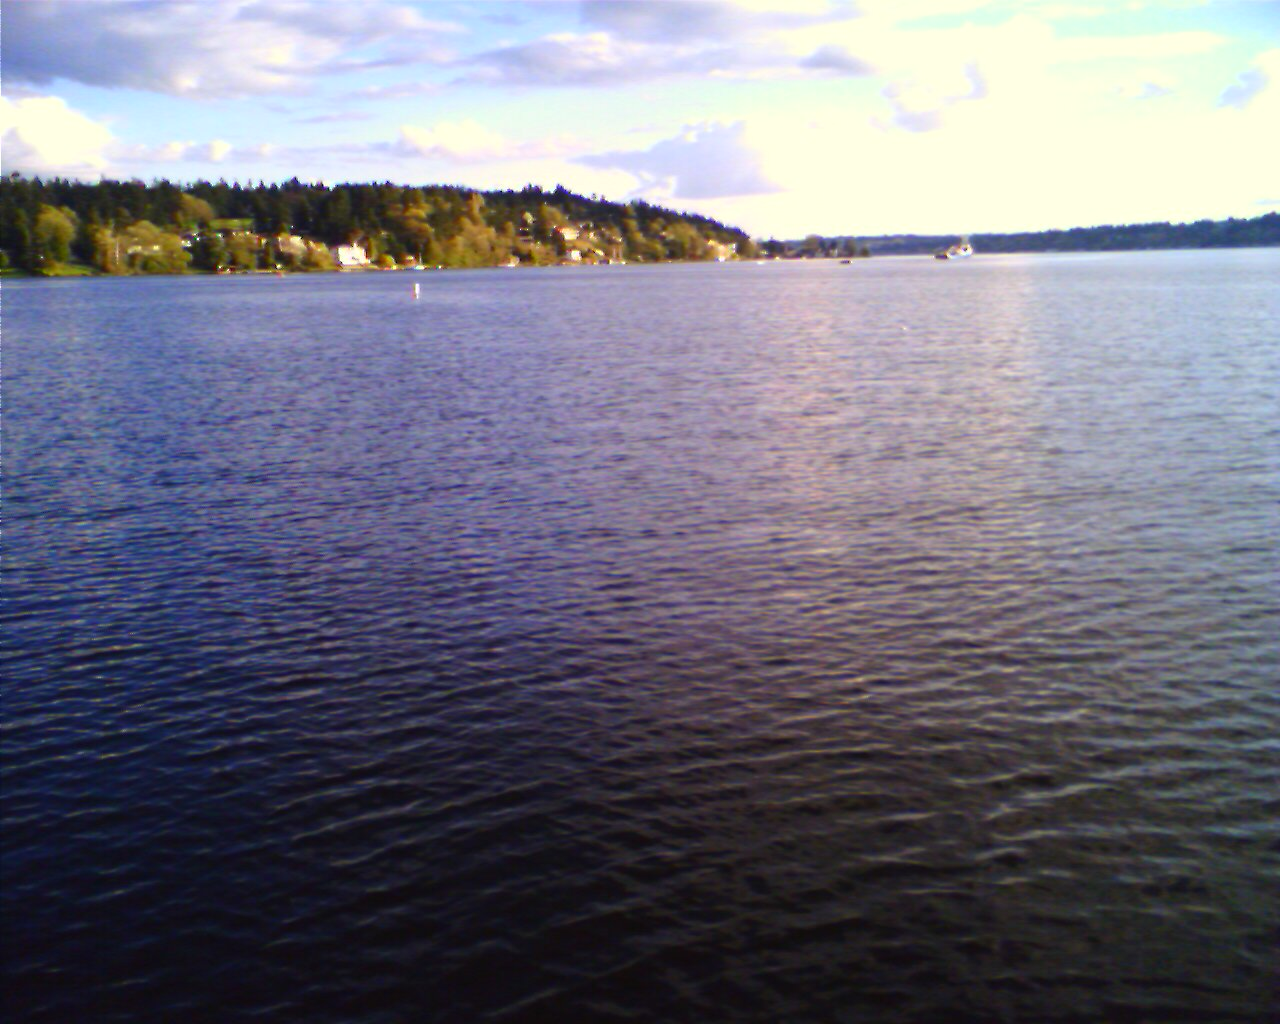 Lake washington on my bike ride